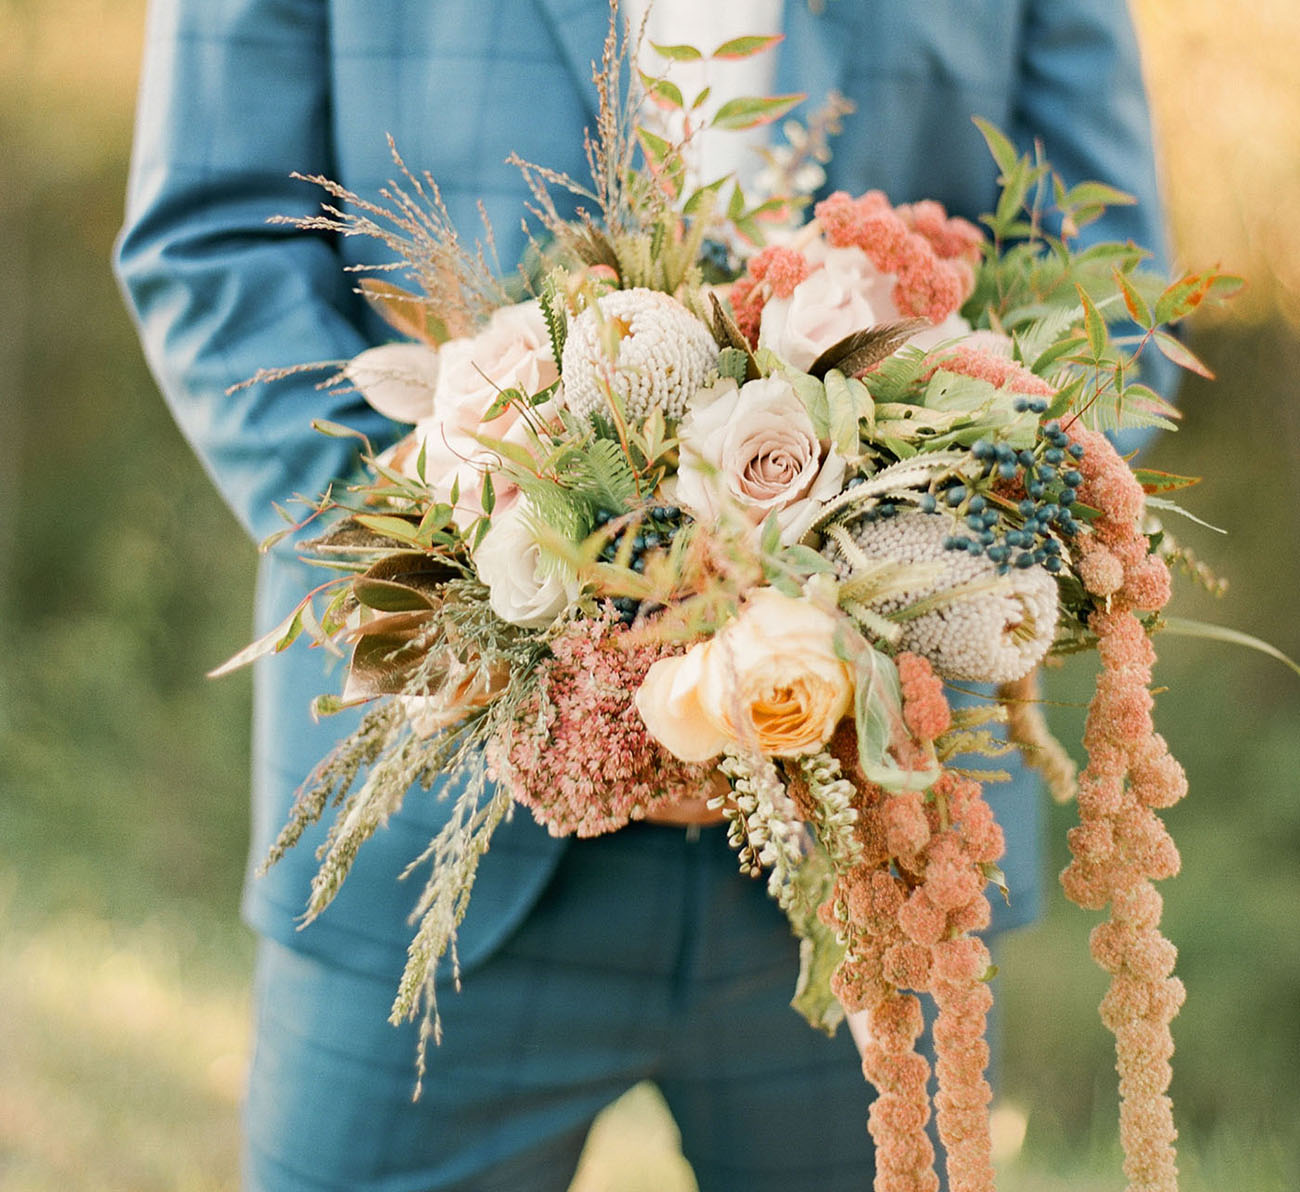 The bridal bouquet looked so dreamy and matched the wedding dress so much